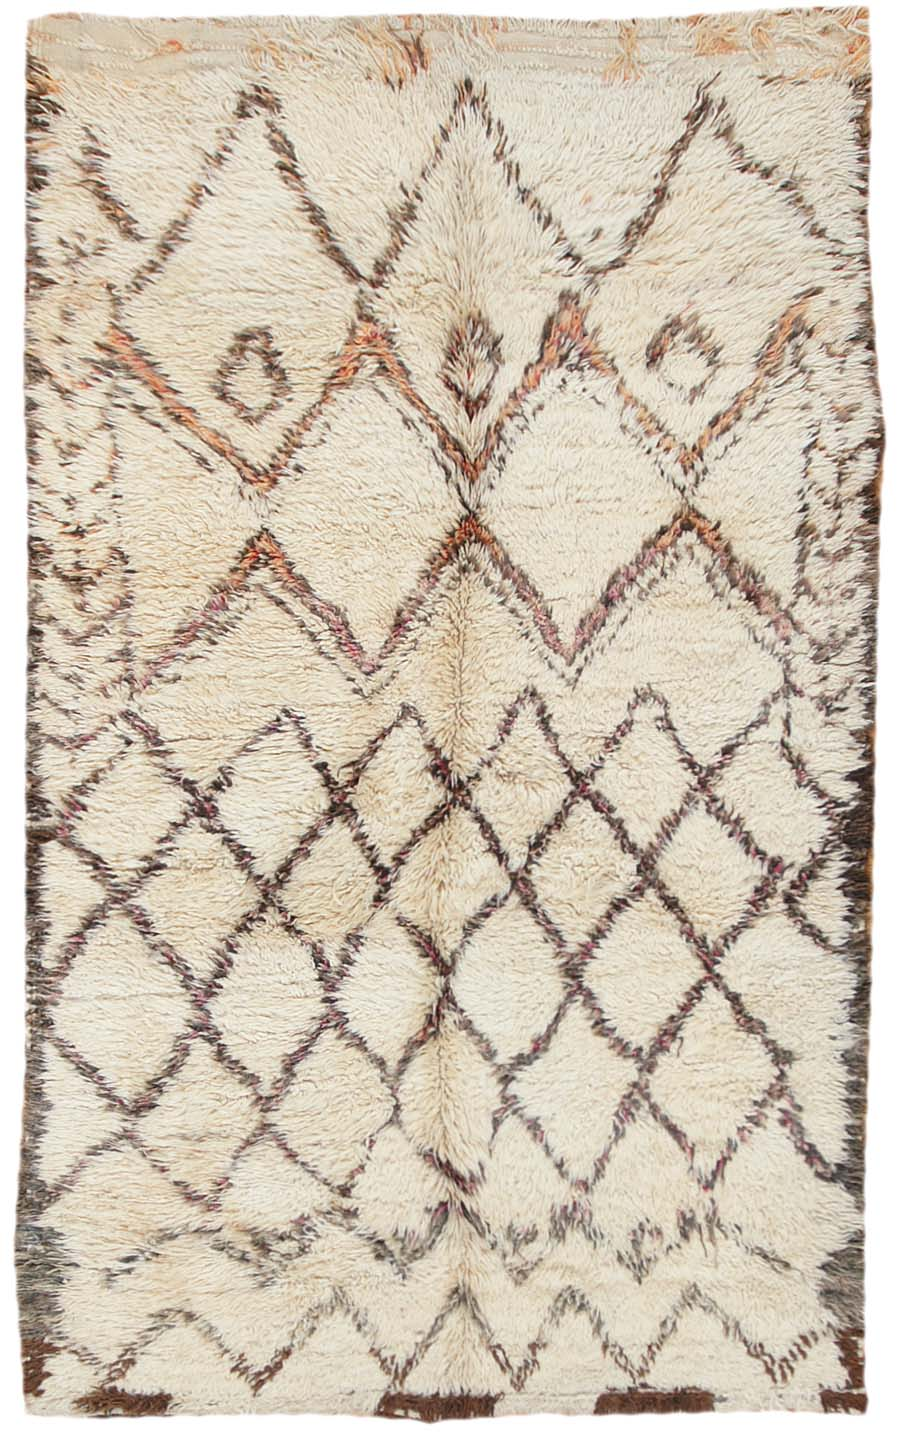 The African Art Moroccan Rug S Kreative Inspiro